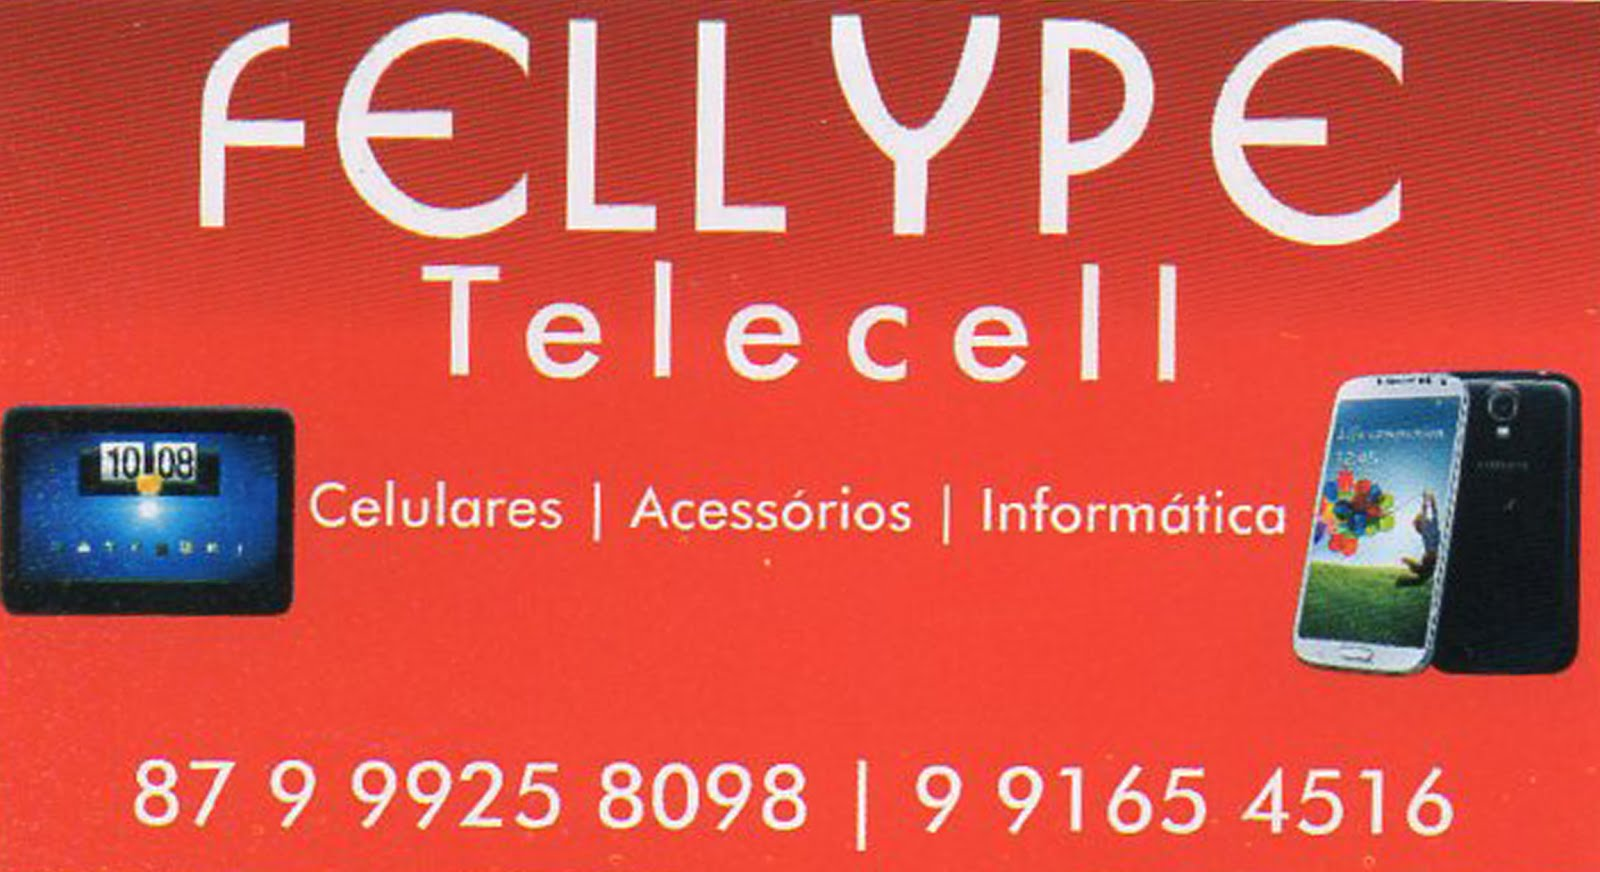 Fellype Telecell